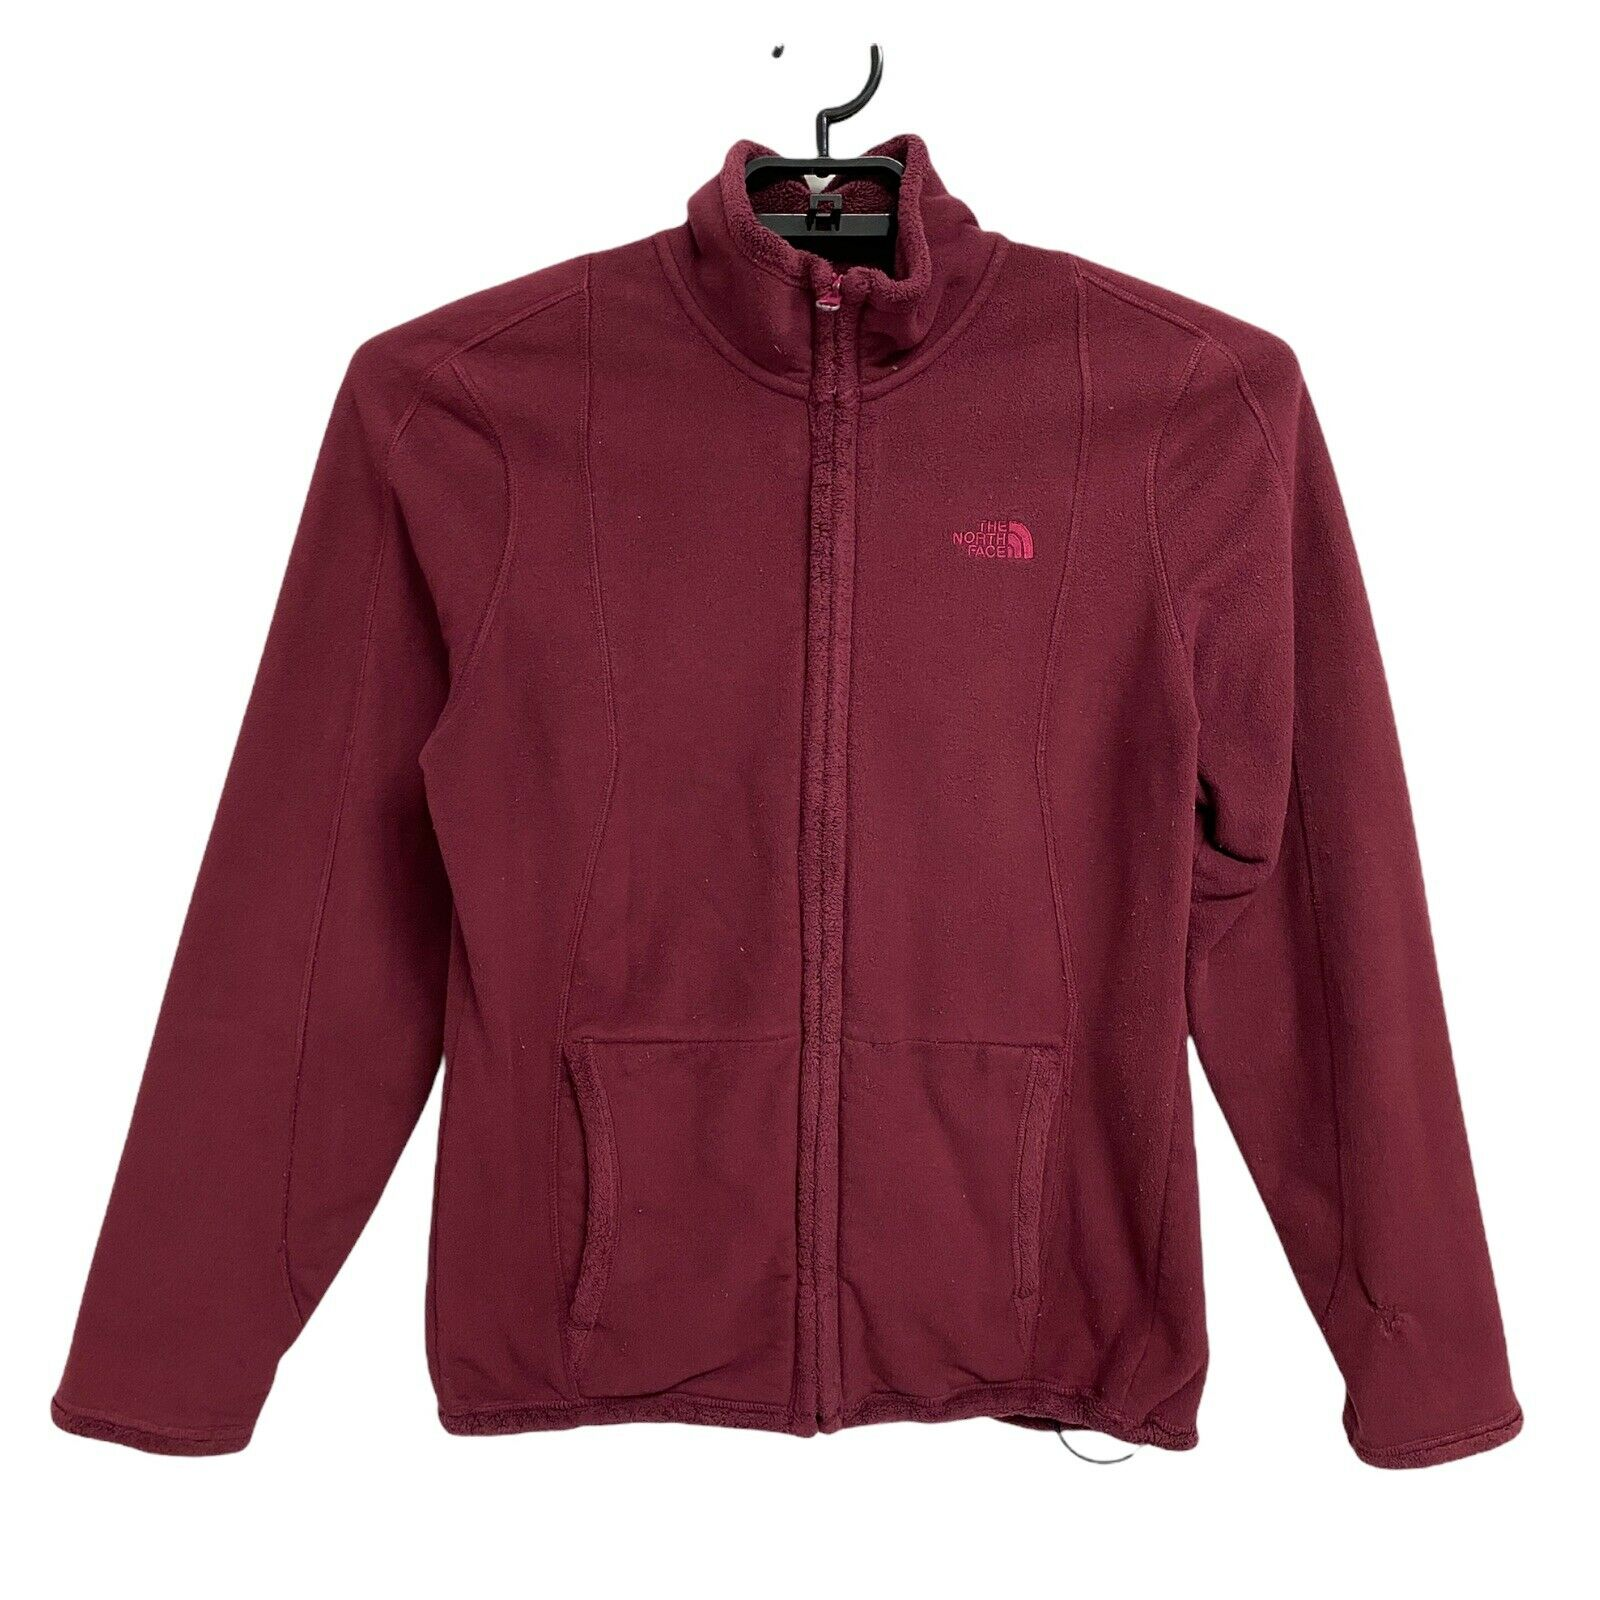 The North Face women's jacket burgundy zip front pockets size L/G